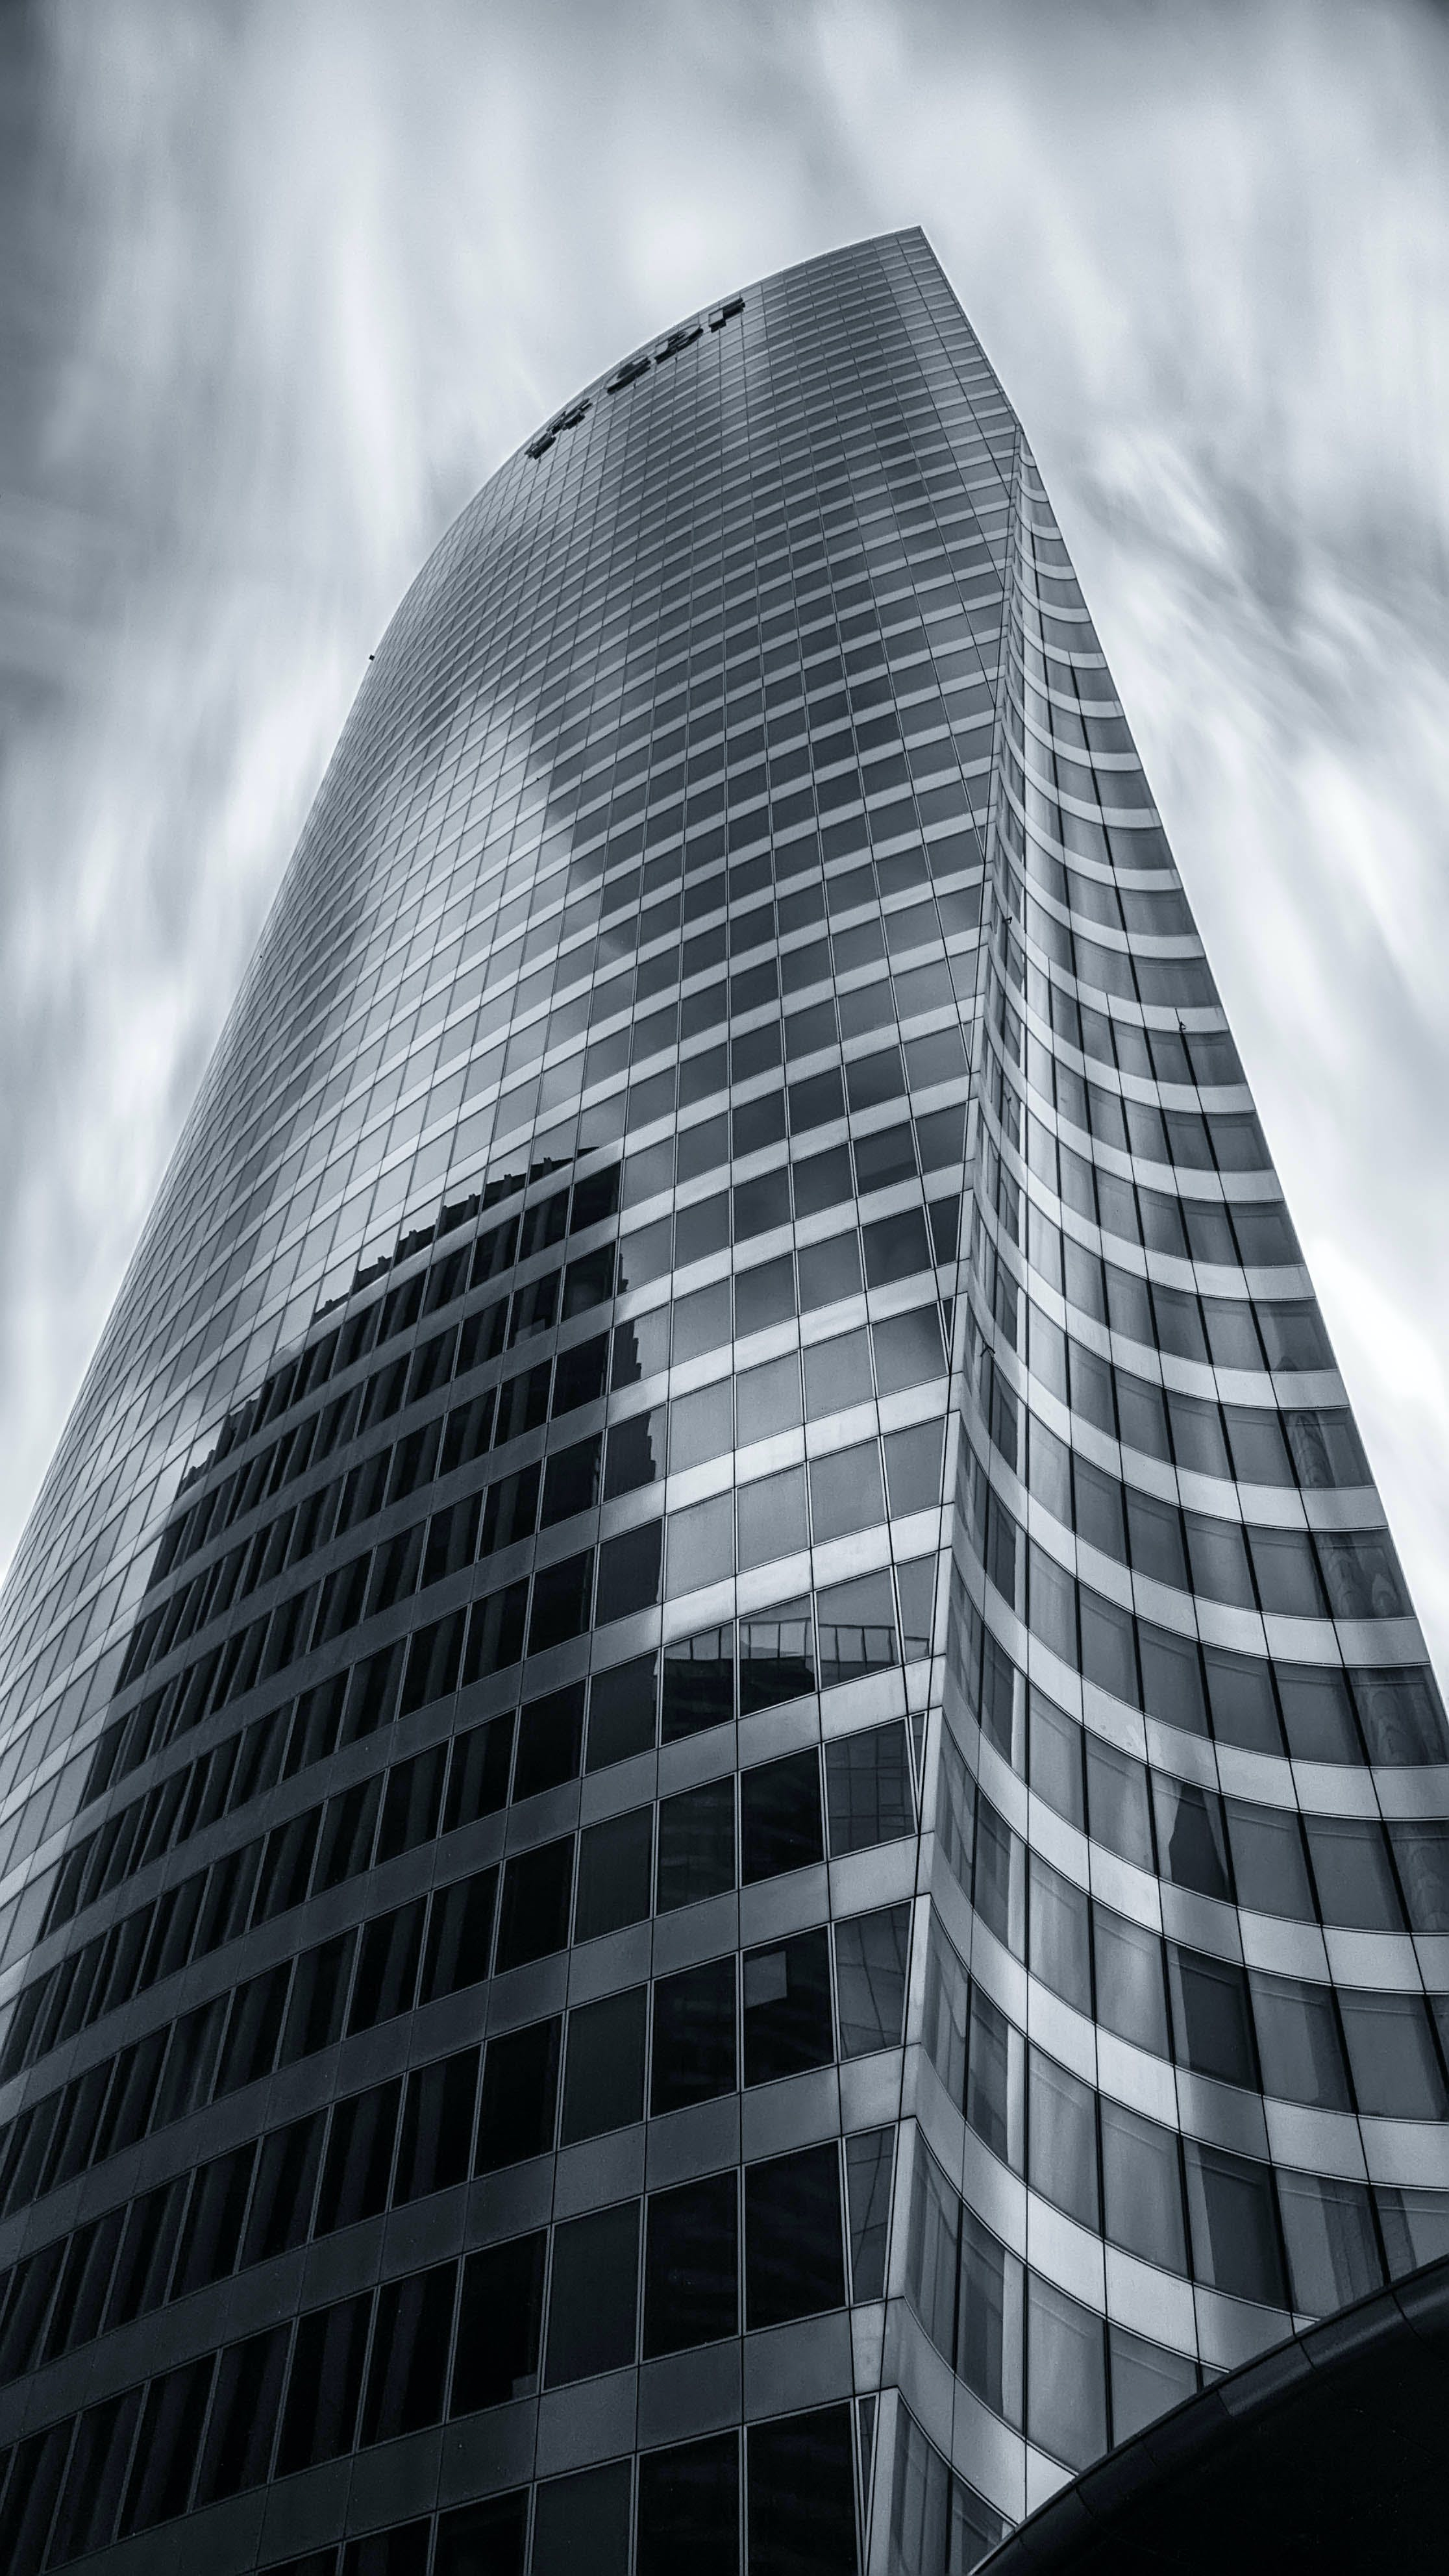 Gray Scale Image of Building